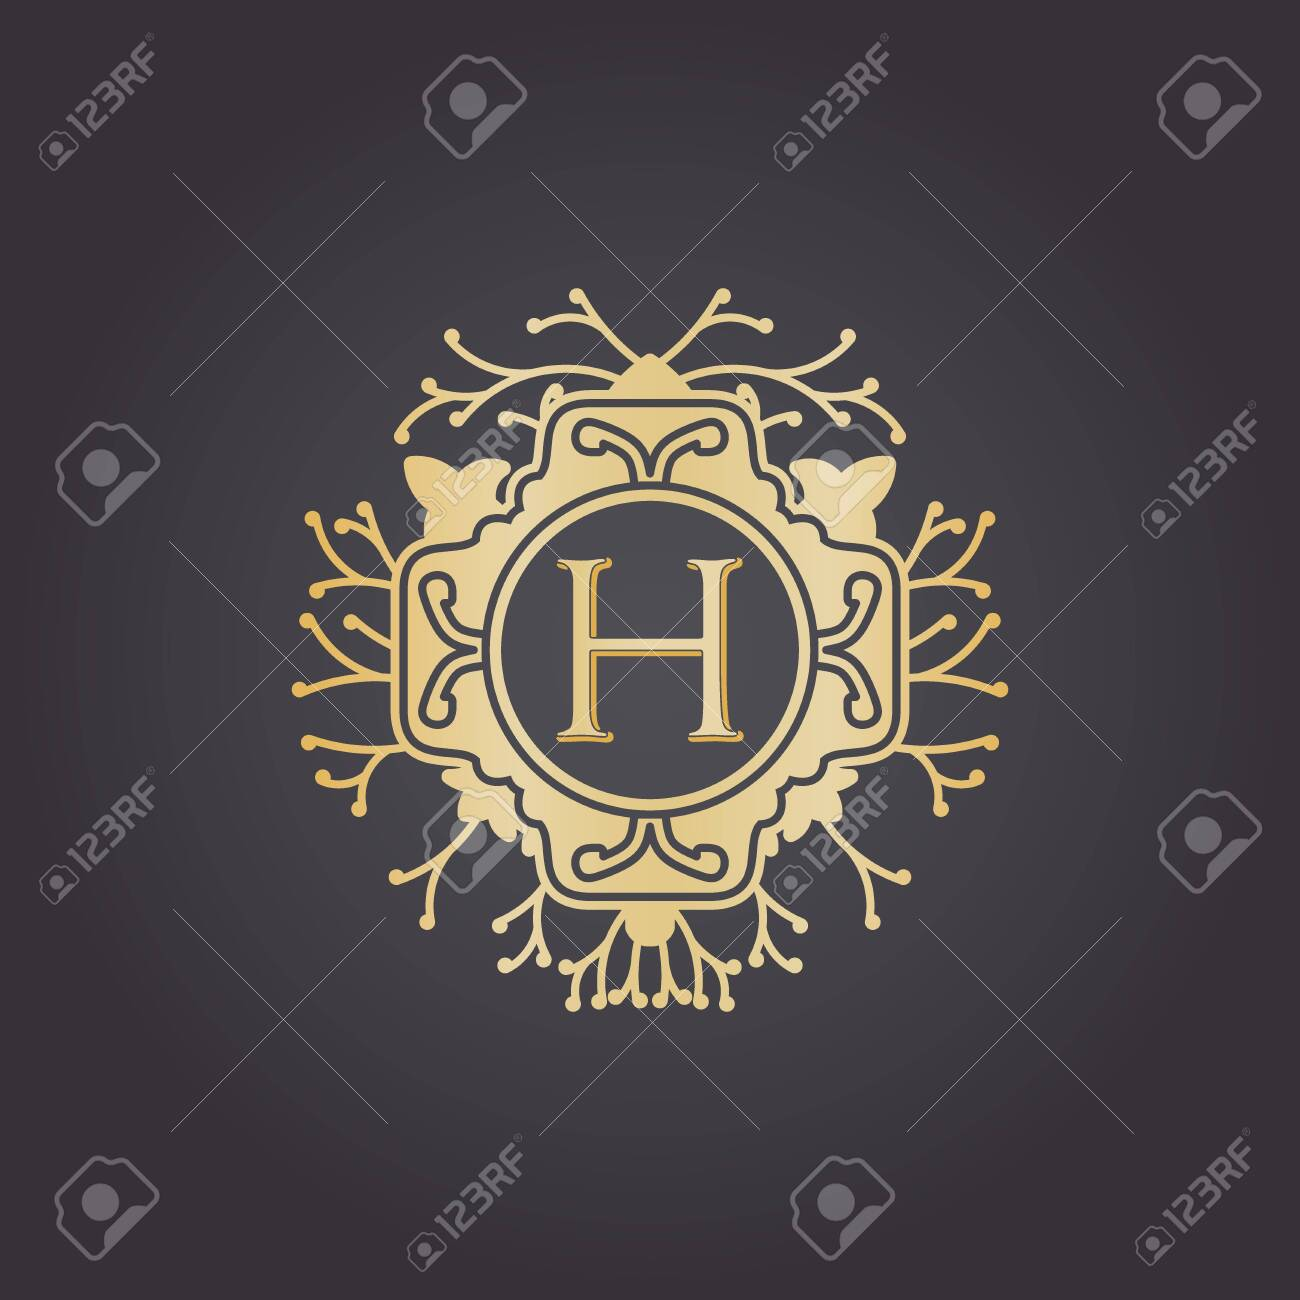 Initial Letter h, Luxury Logo for boutique, cosmetic, or jewelery logo design. Vector Illustration - 144487950